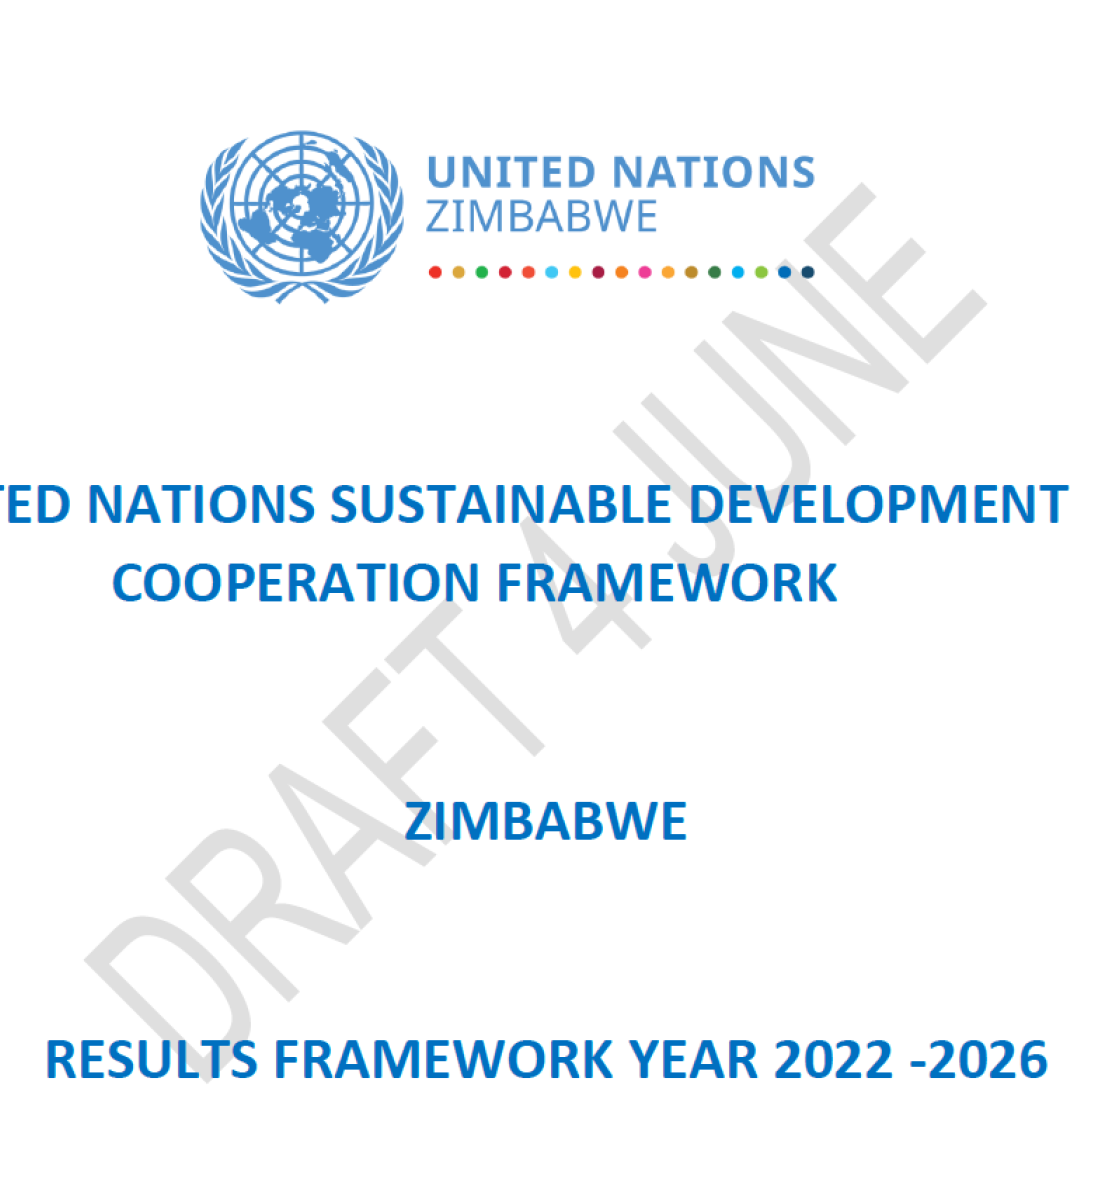 This document has a white background and blue text.  The UN logo appears in the centre of the page.